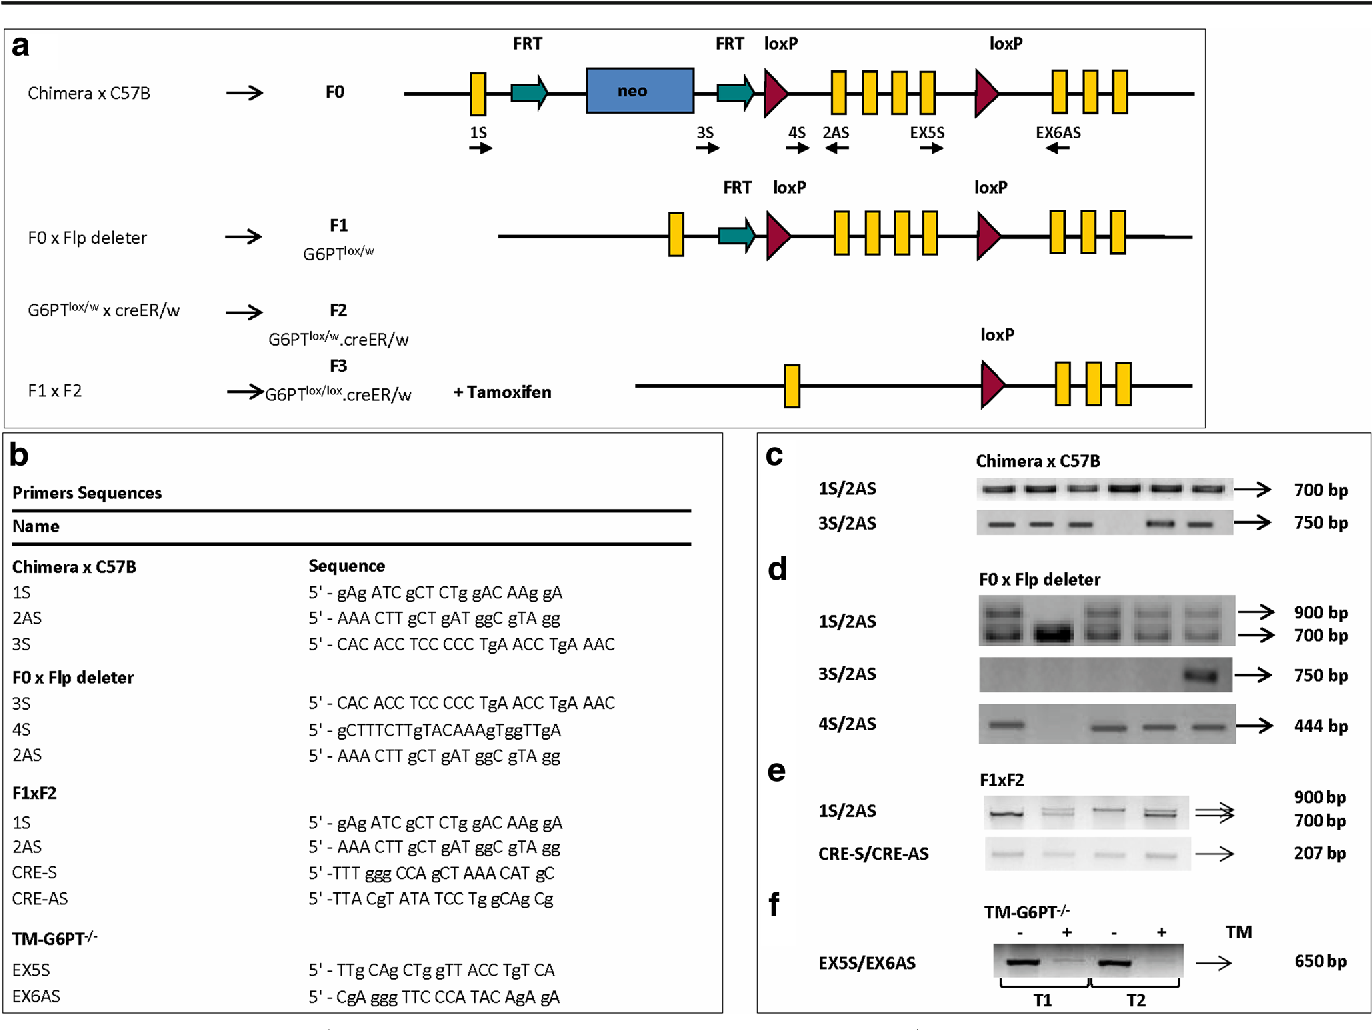 Development and characterization of an inducible mouse model for